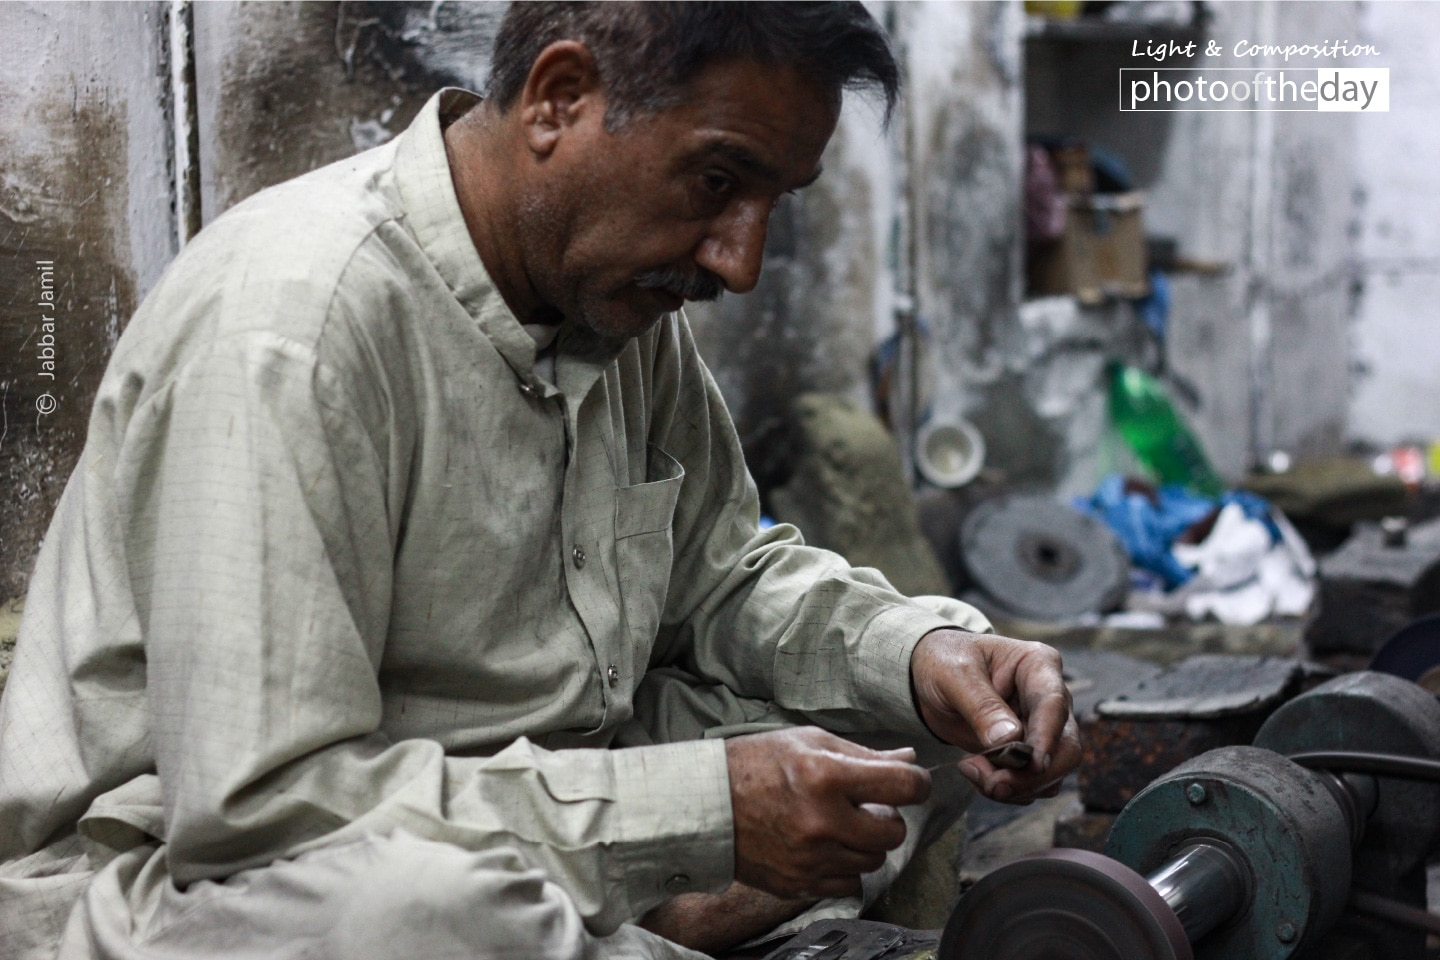 A Worker at Surgical Factory, by Jabbar Jamil